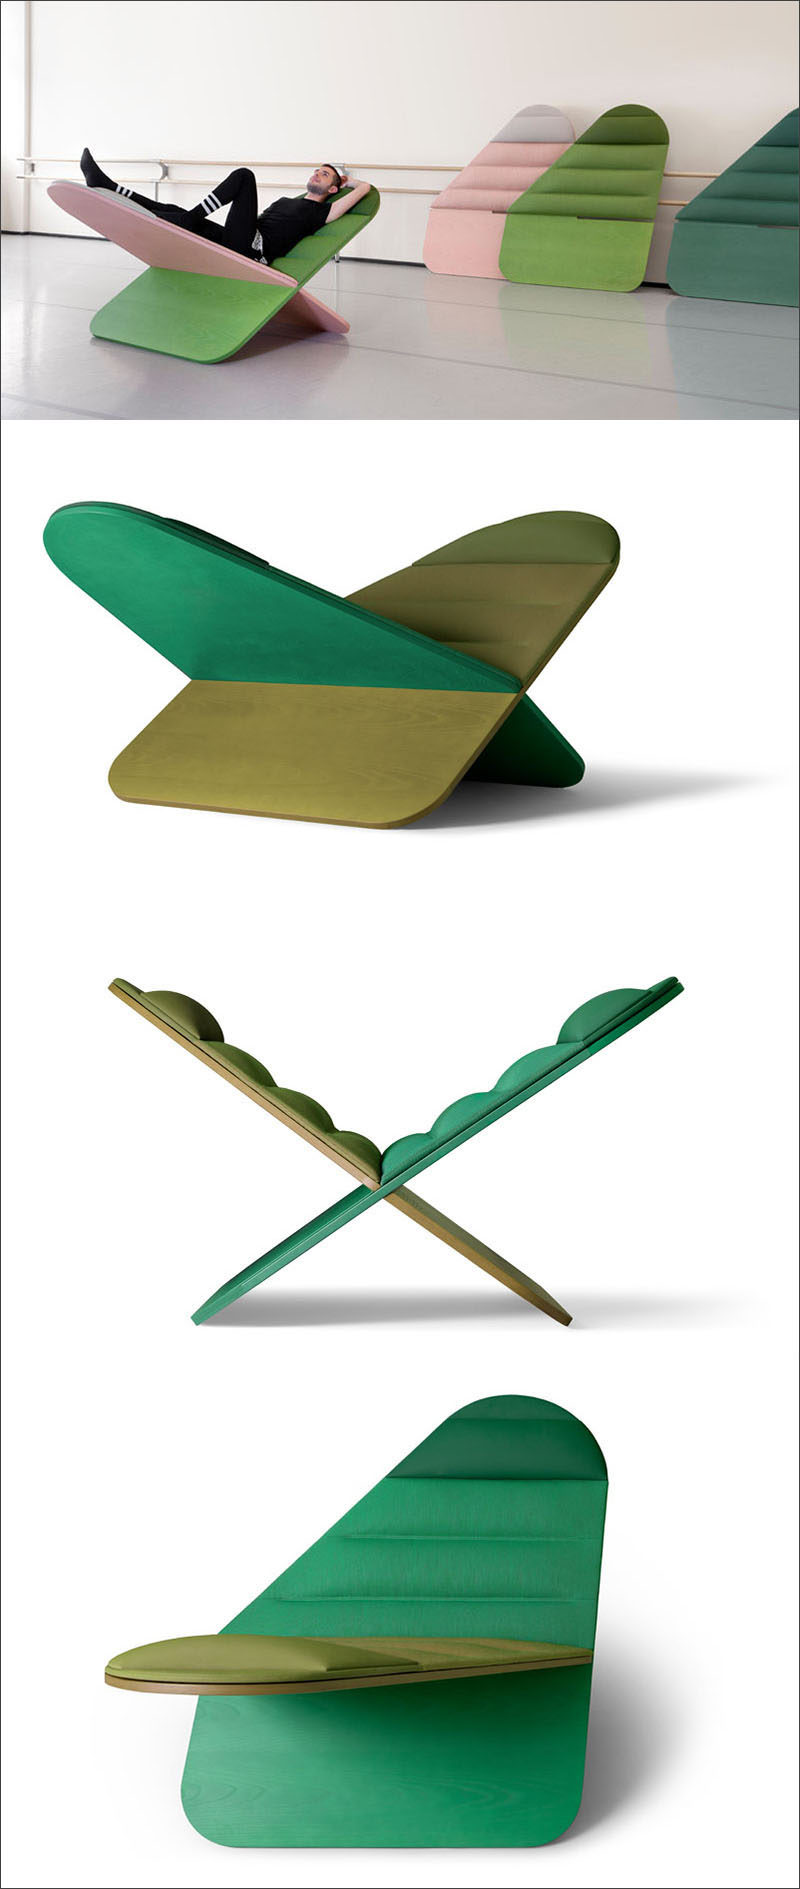 This modern lounge chair named Daydream, was inspired by the symbol for infinity. The chair design includes two interlocking panels made from a timber frame upholstered with Kvadrat textiles.